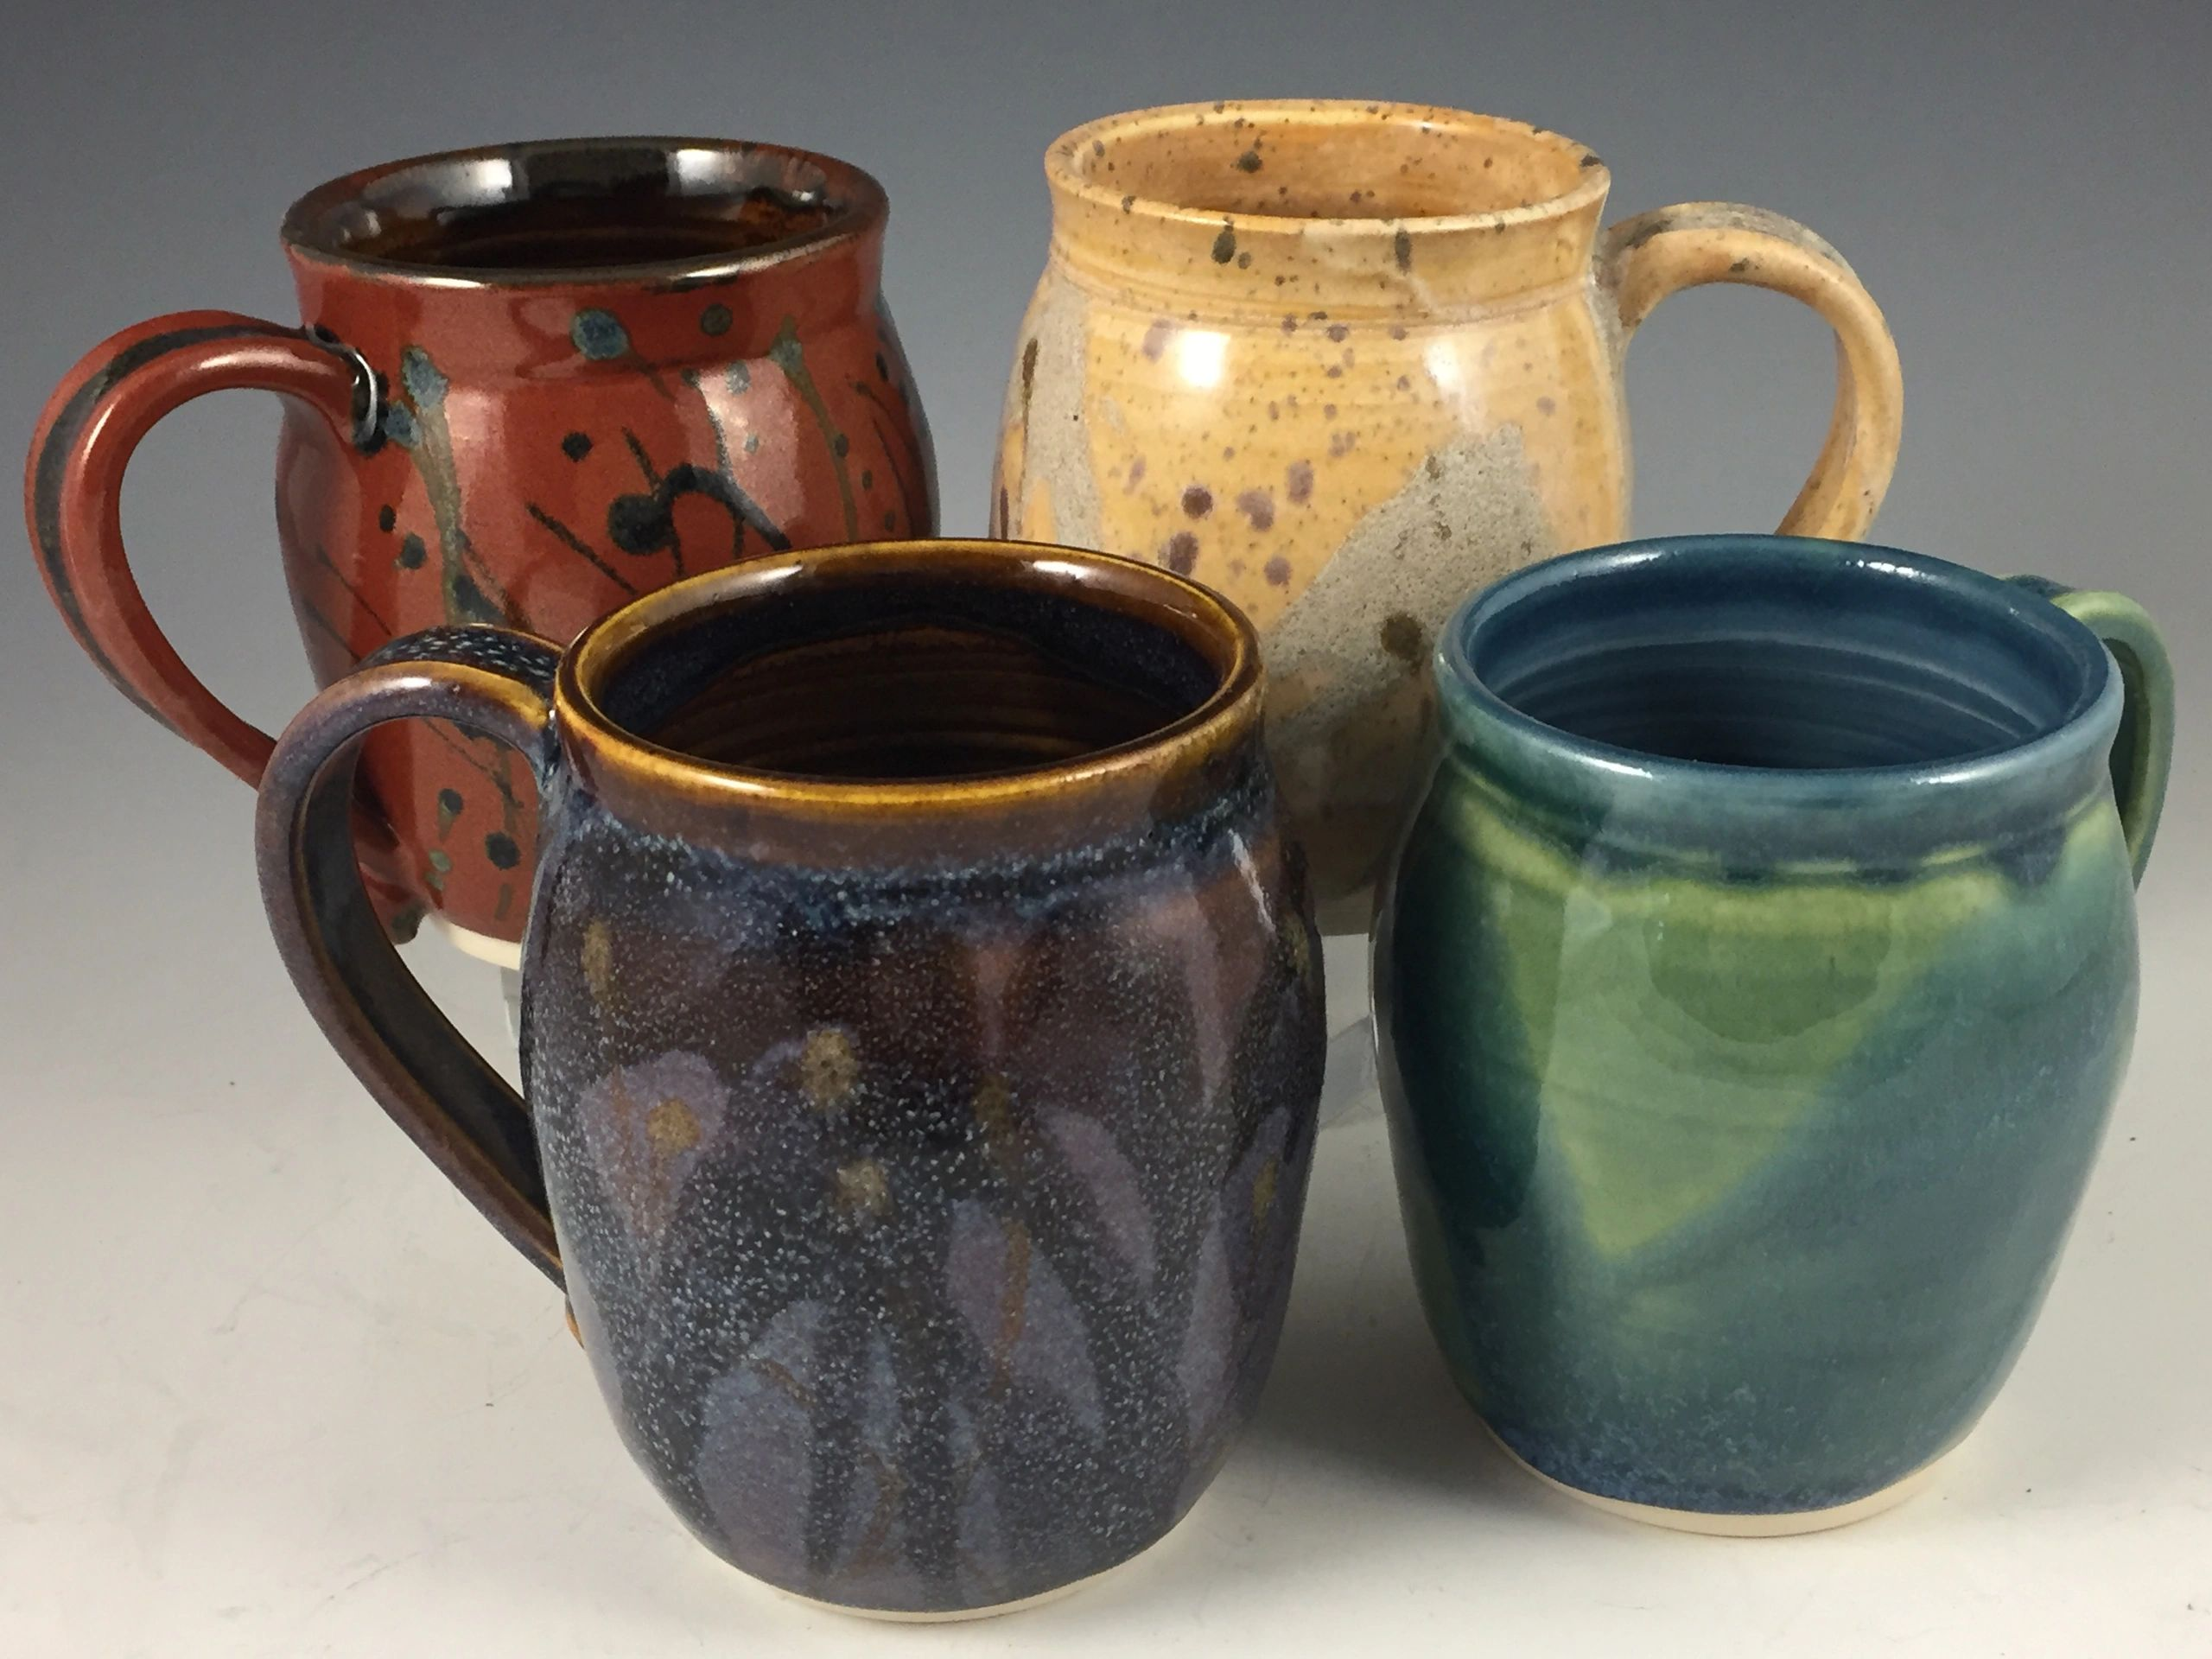 Handmade functional ceramic mugs, wheel-thrown of white stoneware clay and high fired.